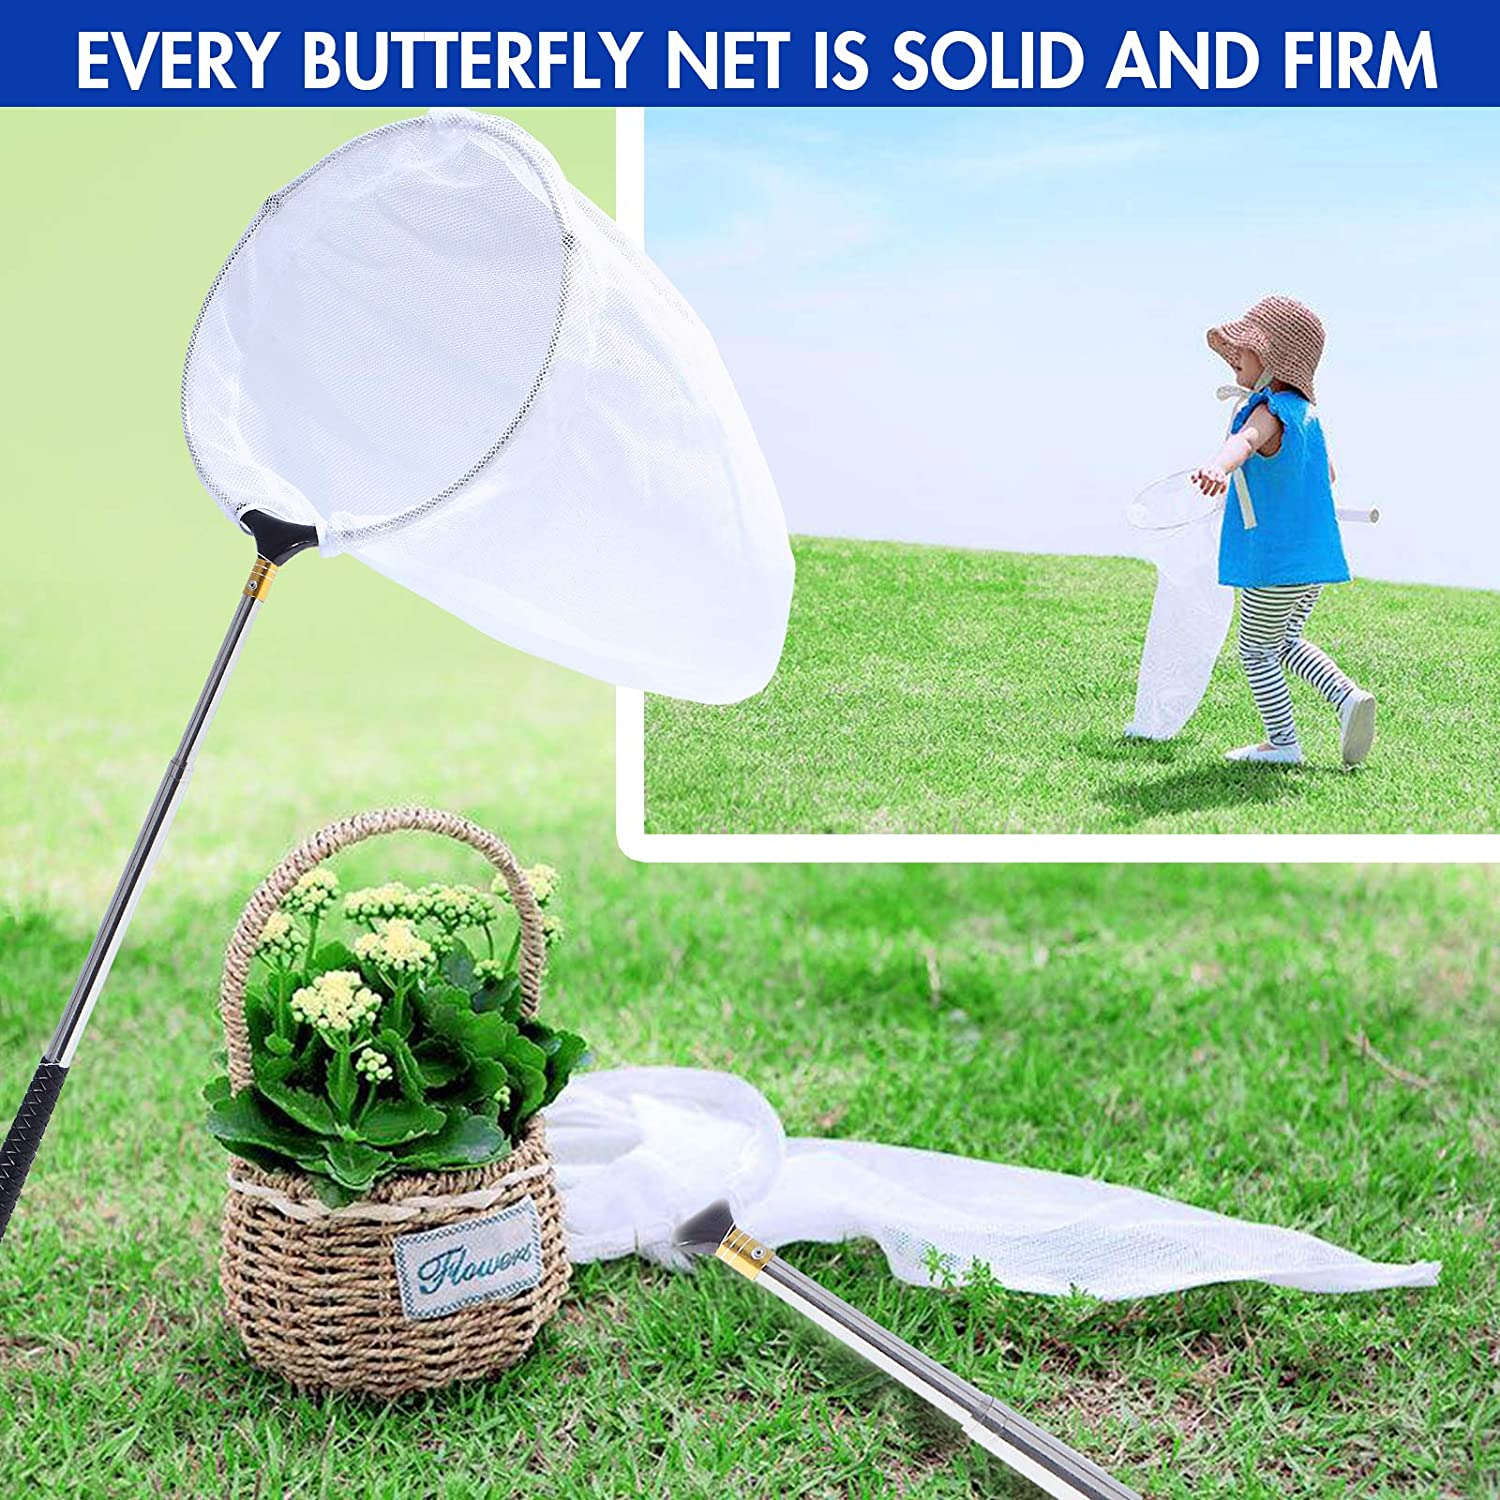 Silver 70 in Insect Toy Nets for Kids and Family Rngeo Telescopic Butterfly Net 15 in Stainless Steel Extendable Fishing